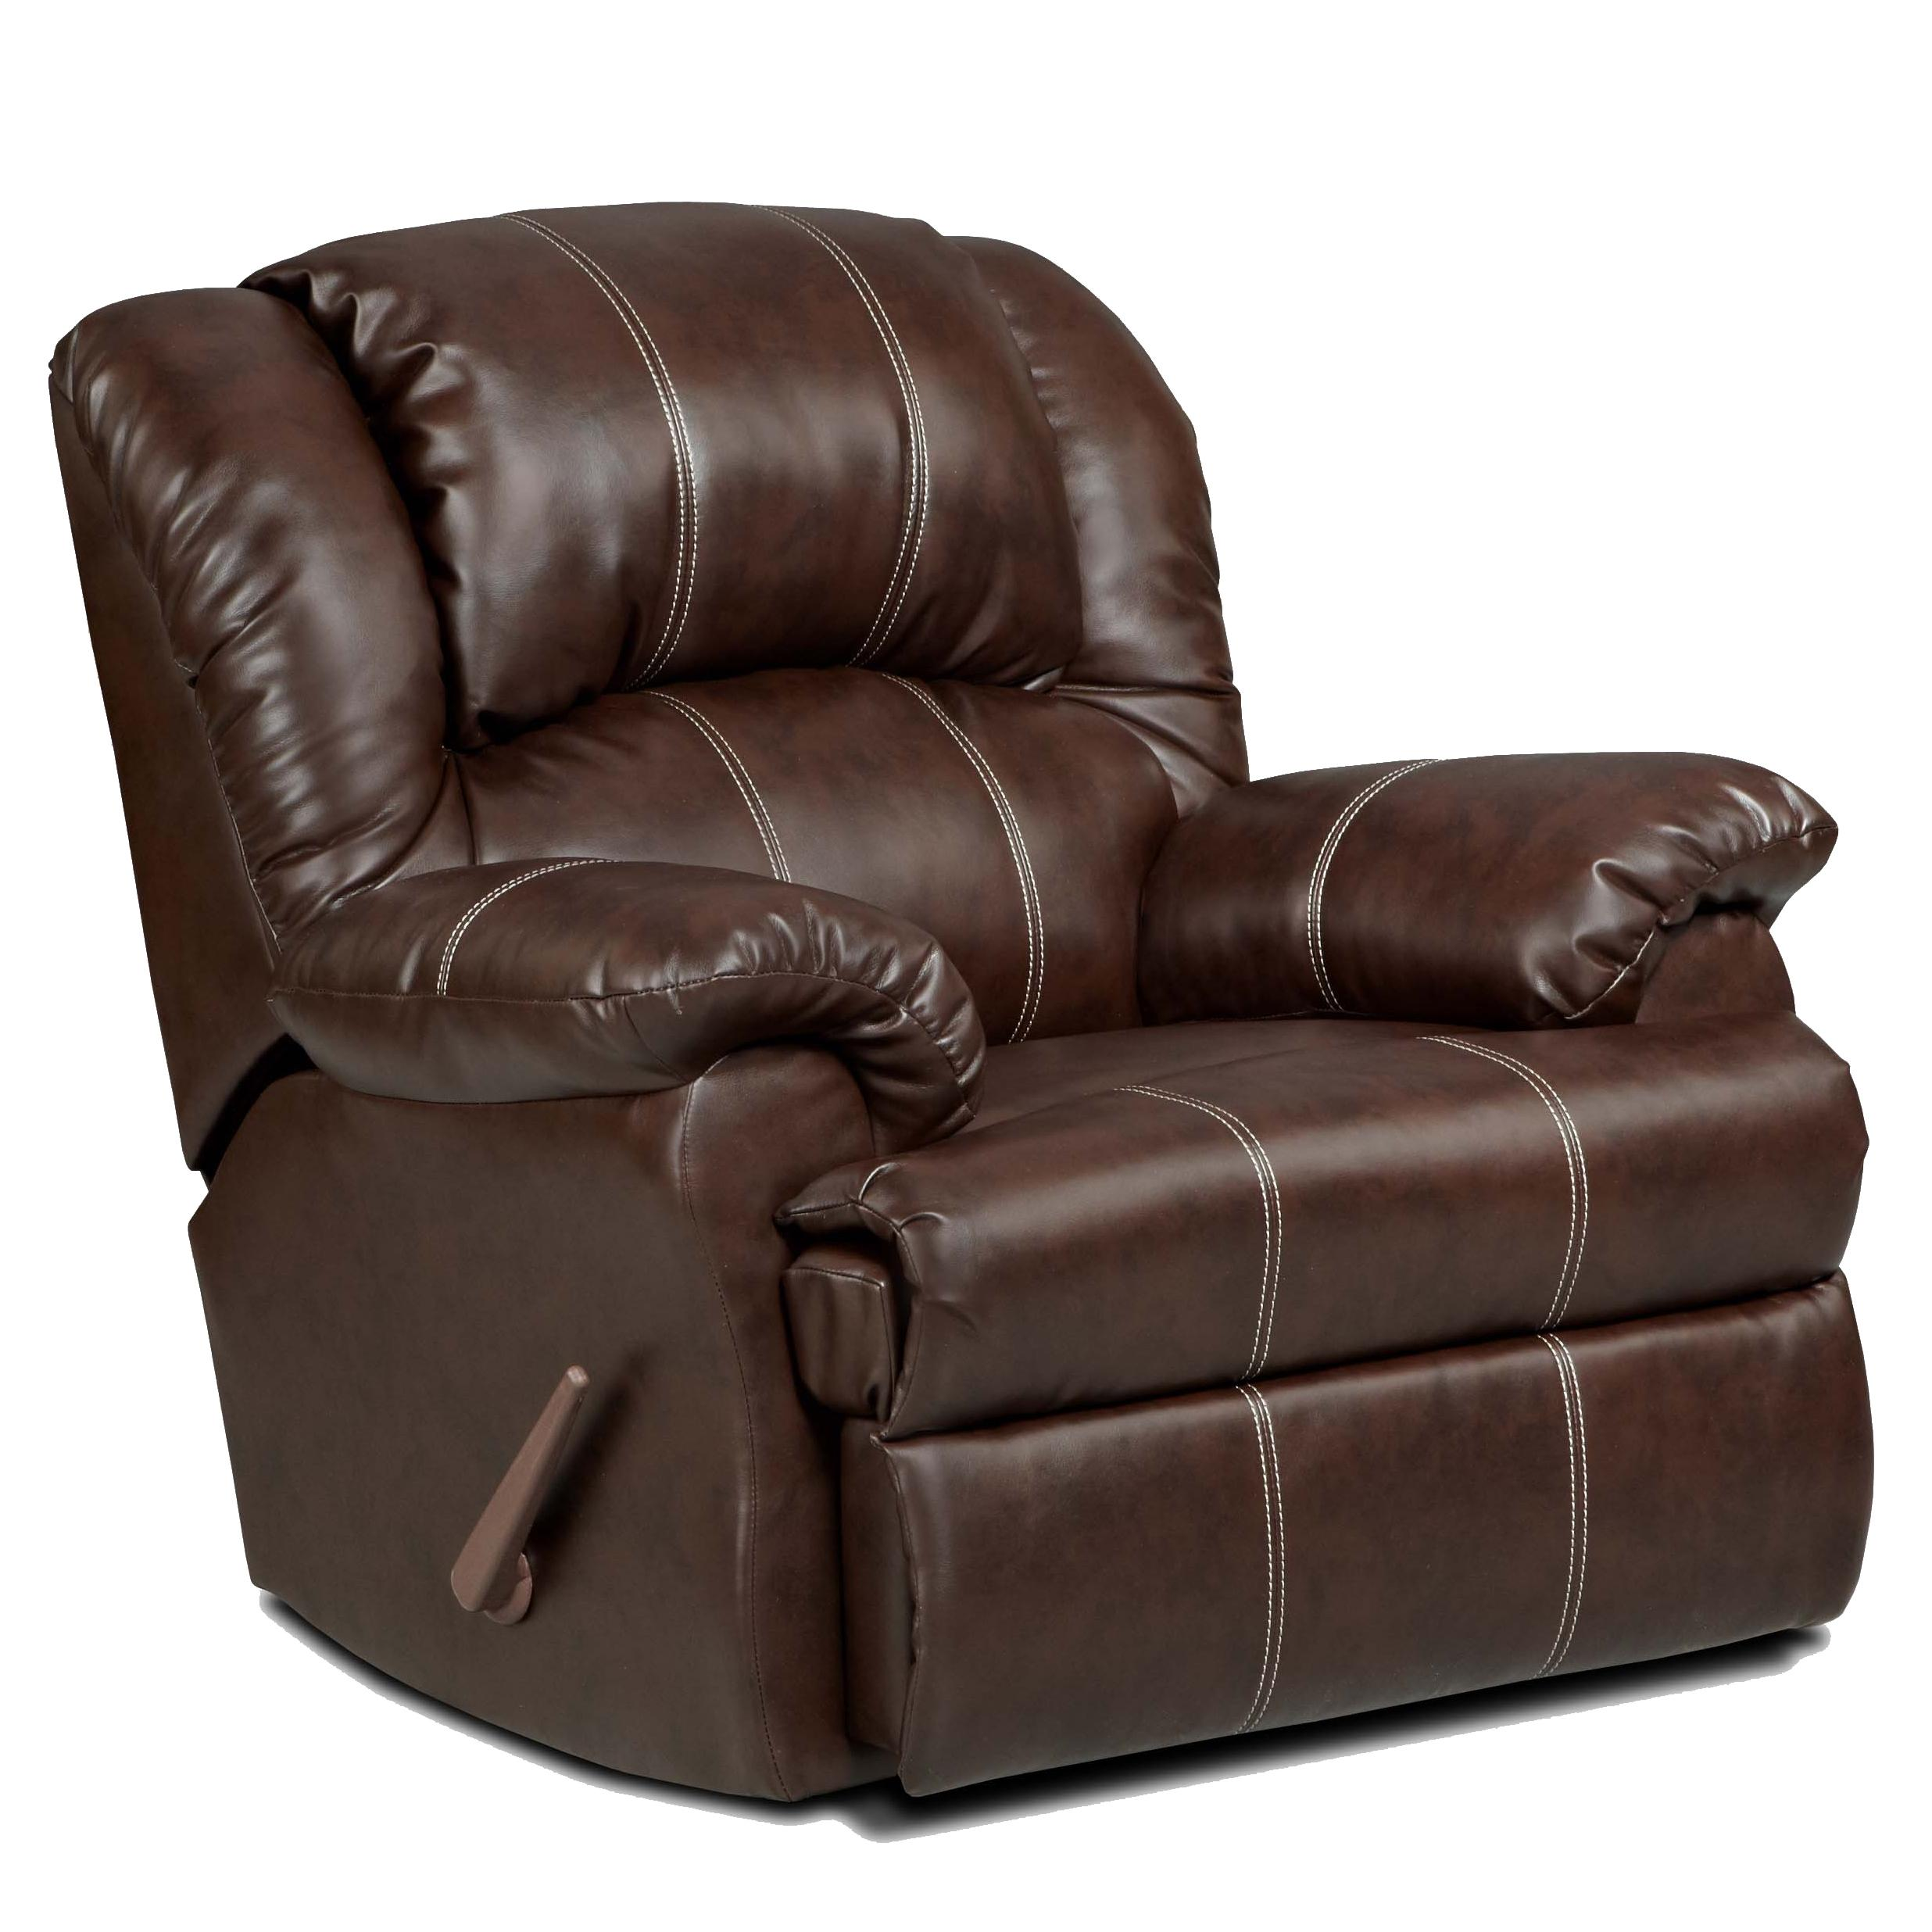 1000 Chaise Rocker Recliner by Affordable Furniture at Wilcox Furniture